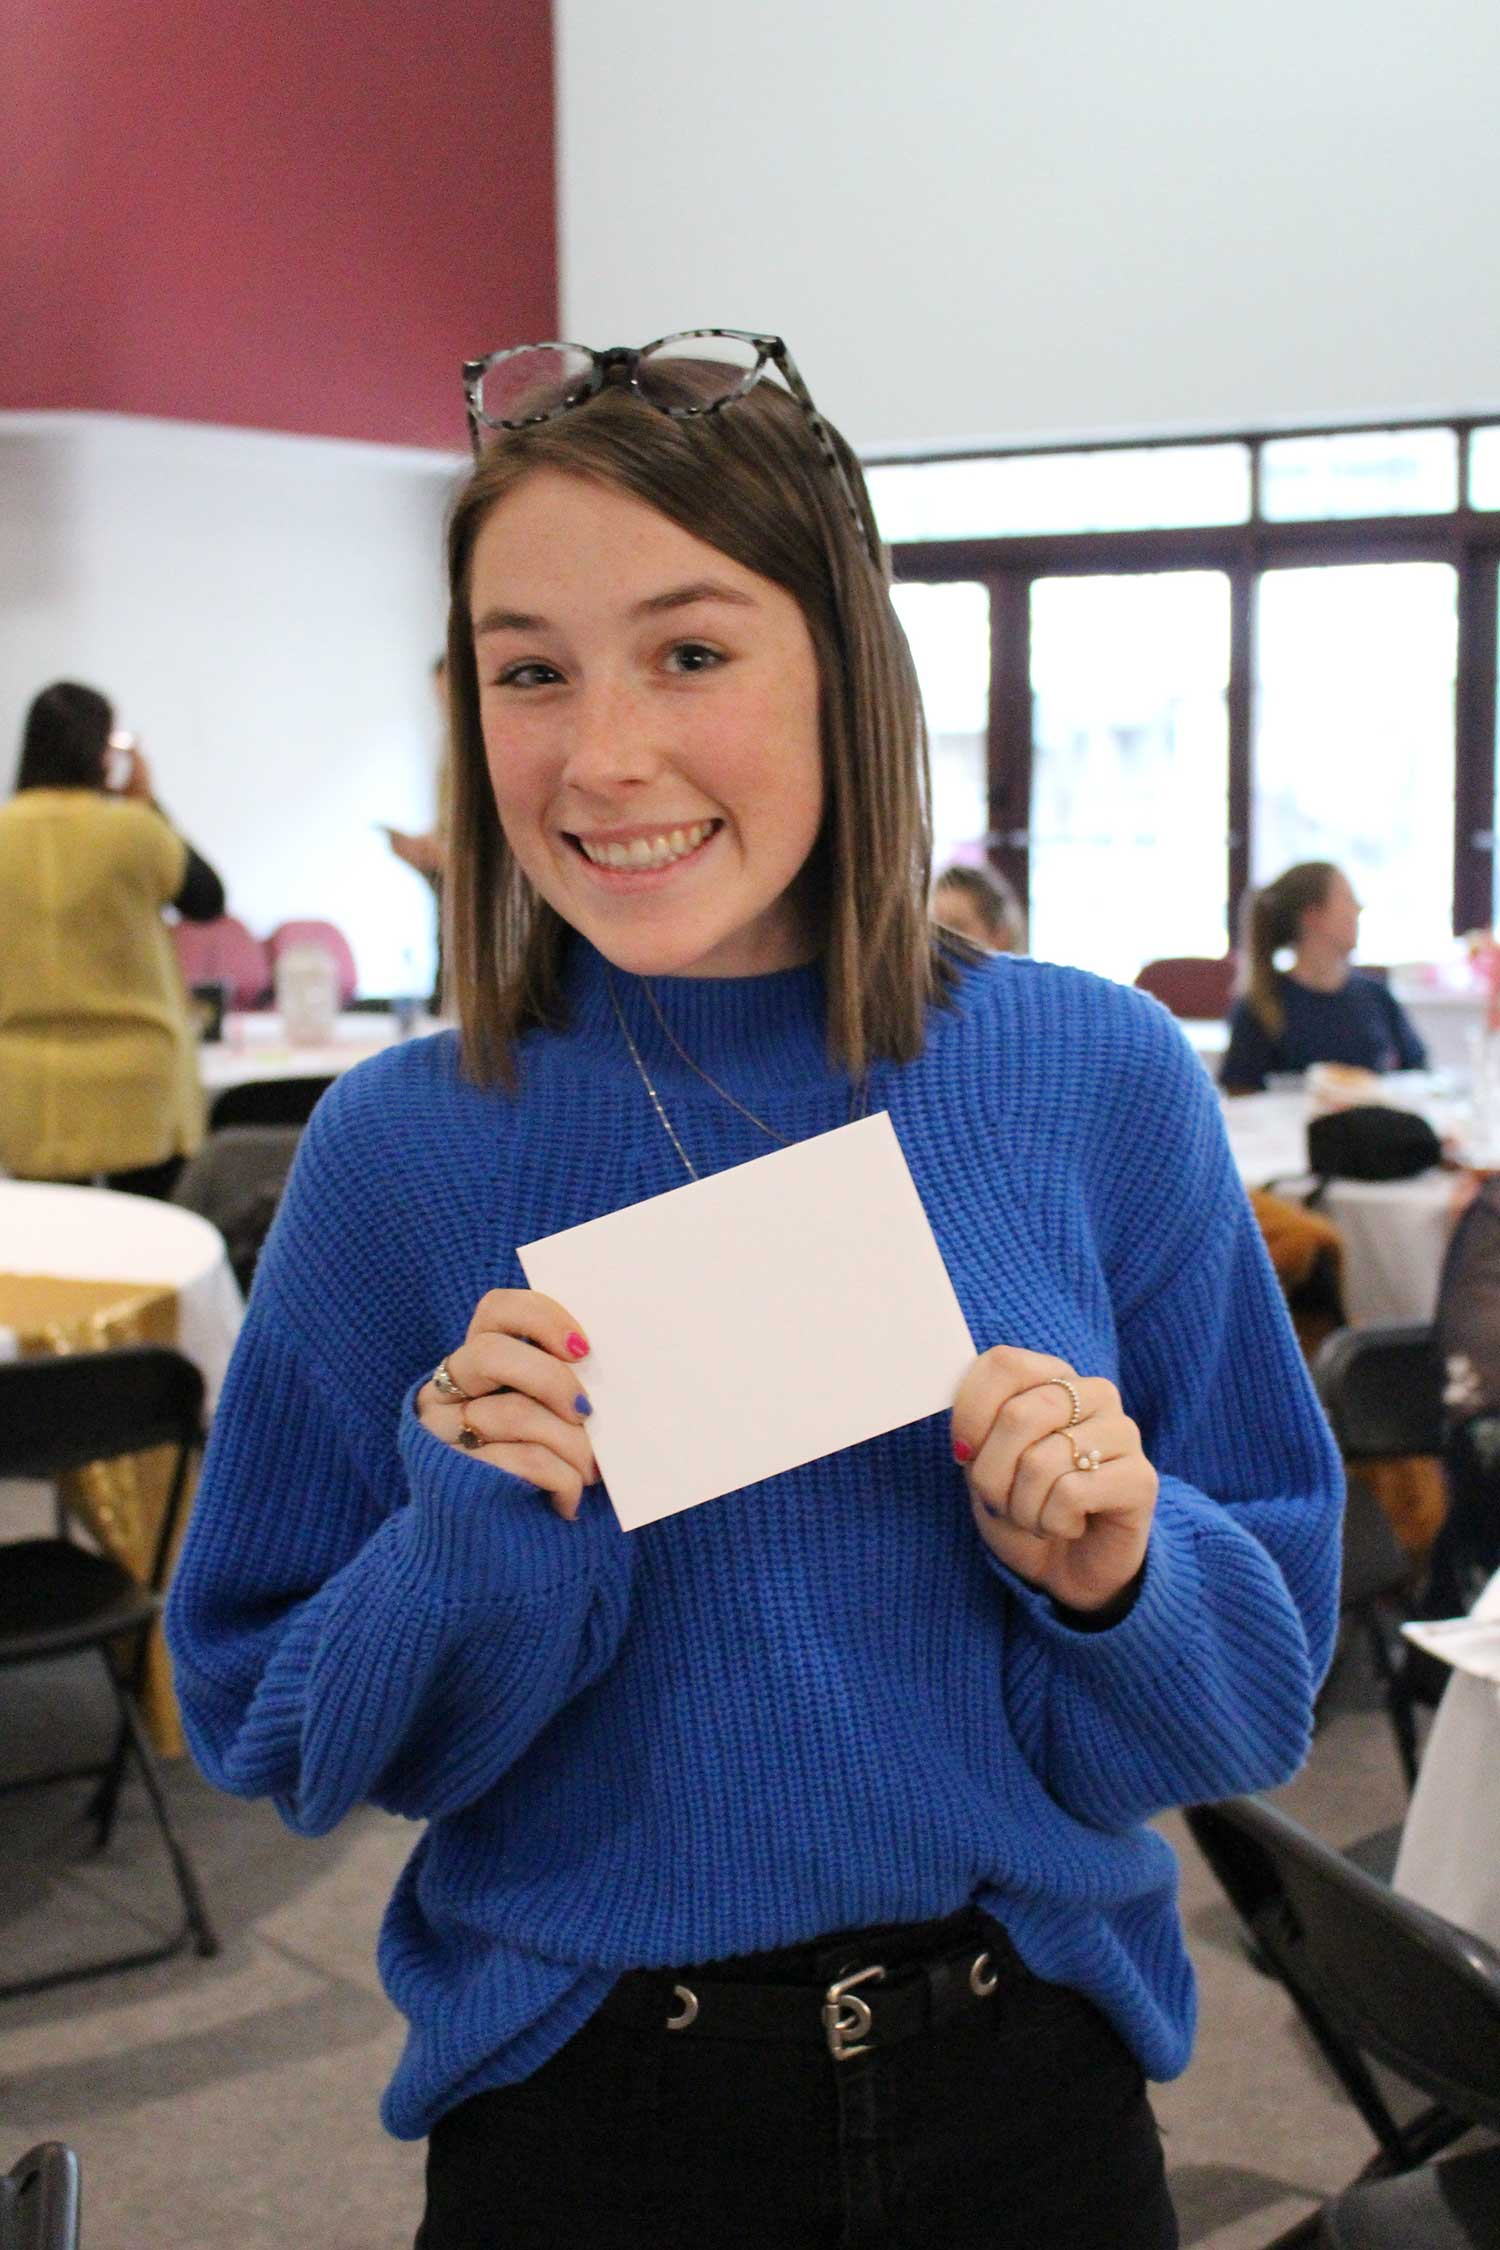 student smiles with gift card envelope in hand